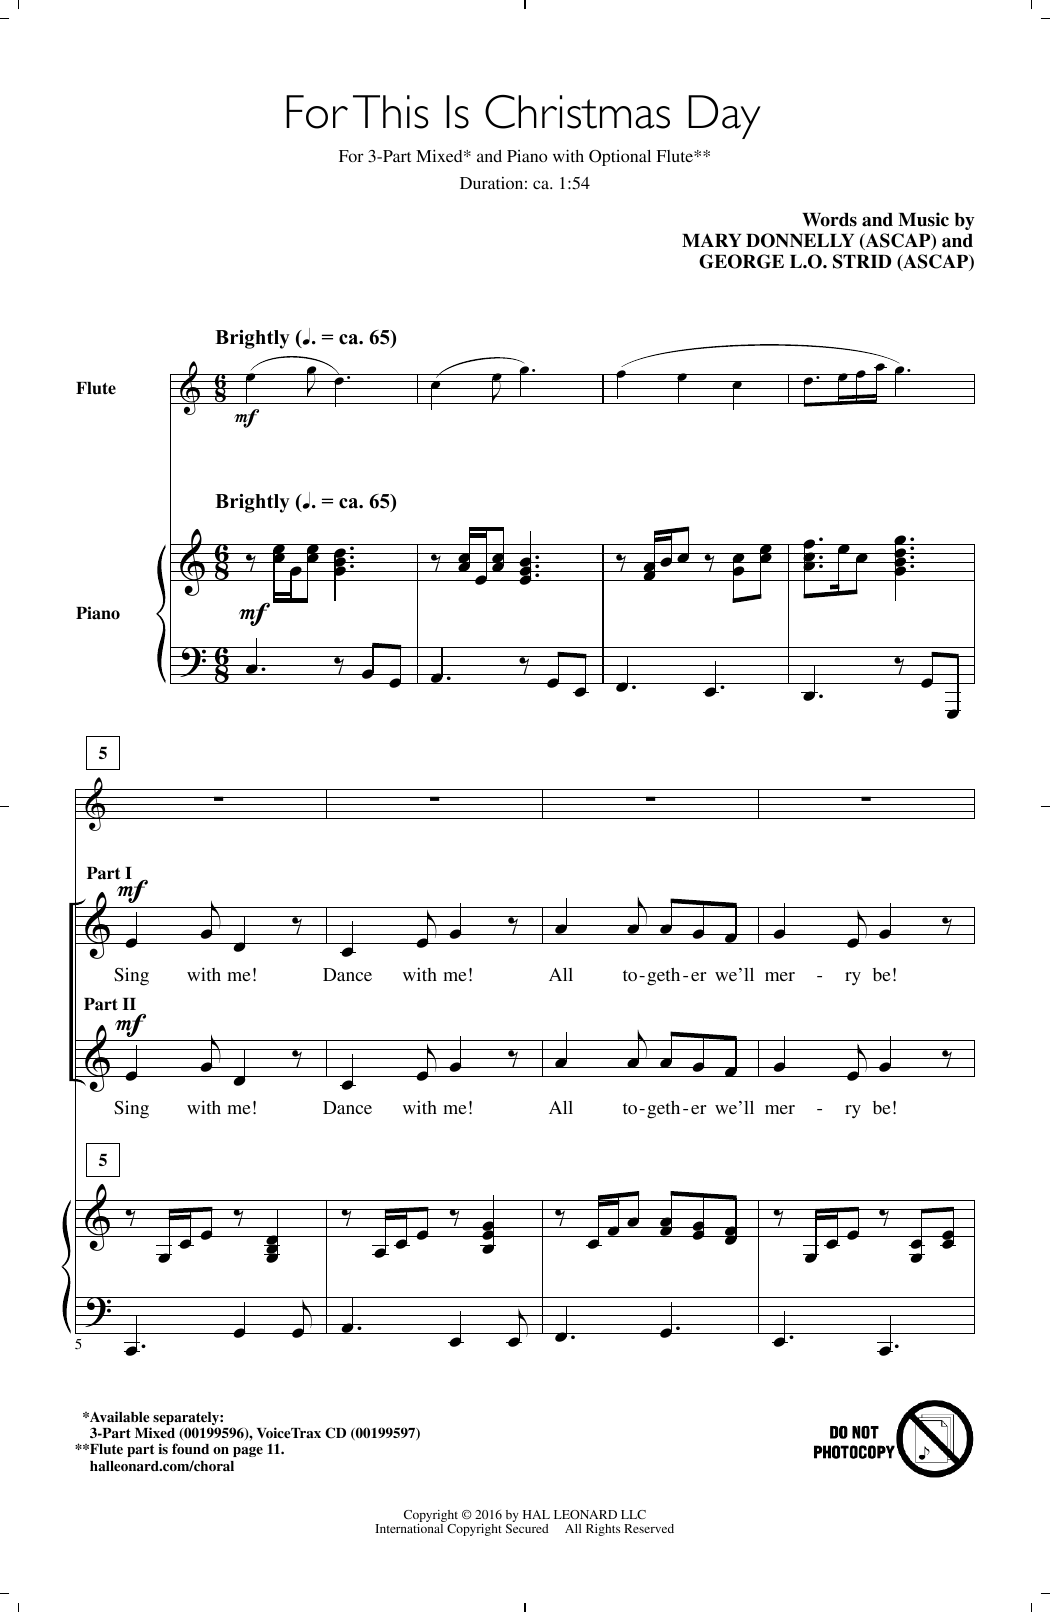 For This Is Christmas Day (3-Part Mixed Choir)